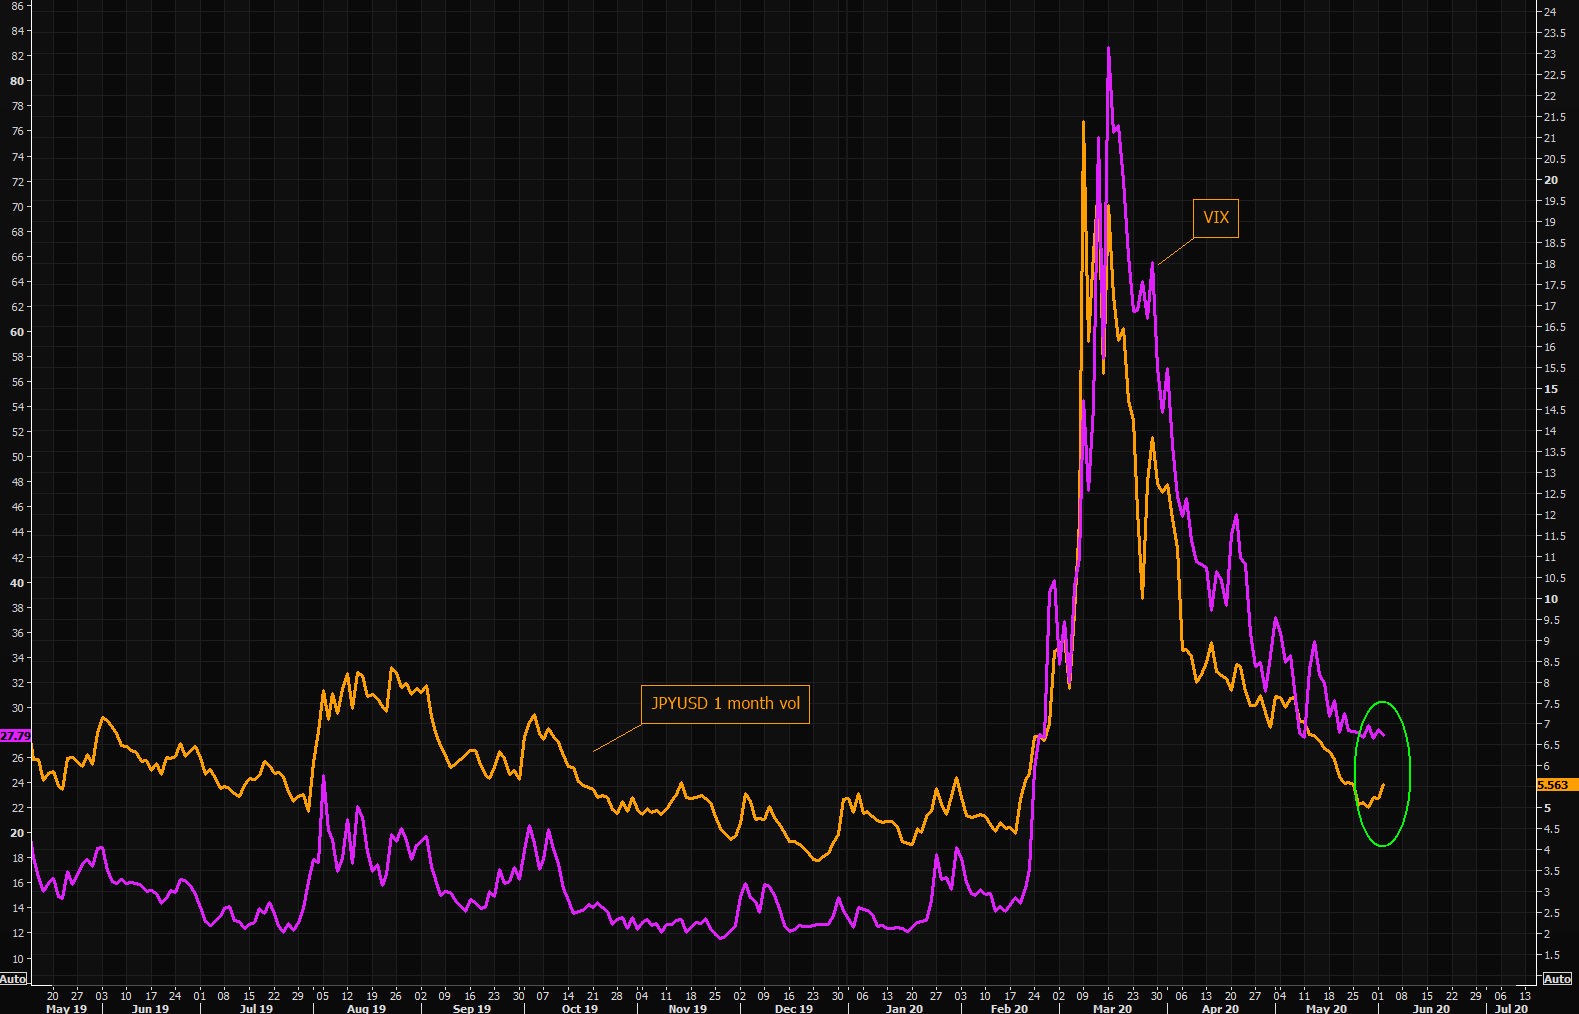 JPY volatility  -  just catching up to VIX or trying to tell something?